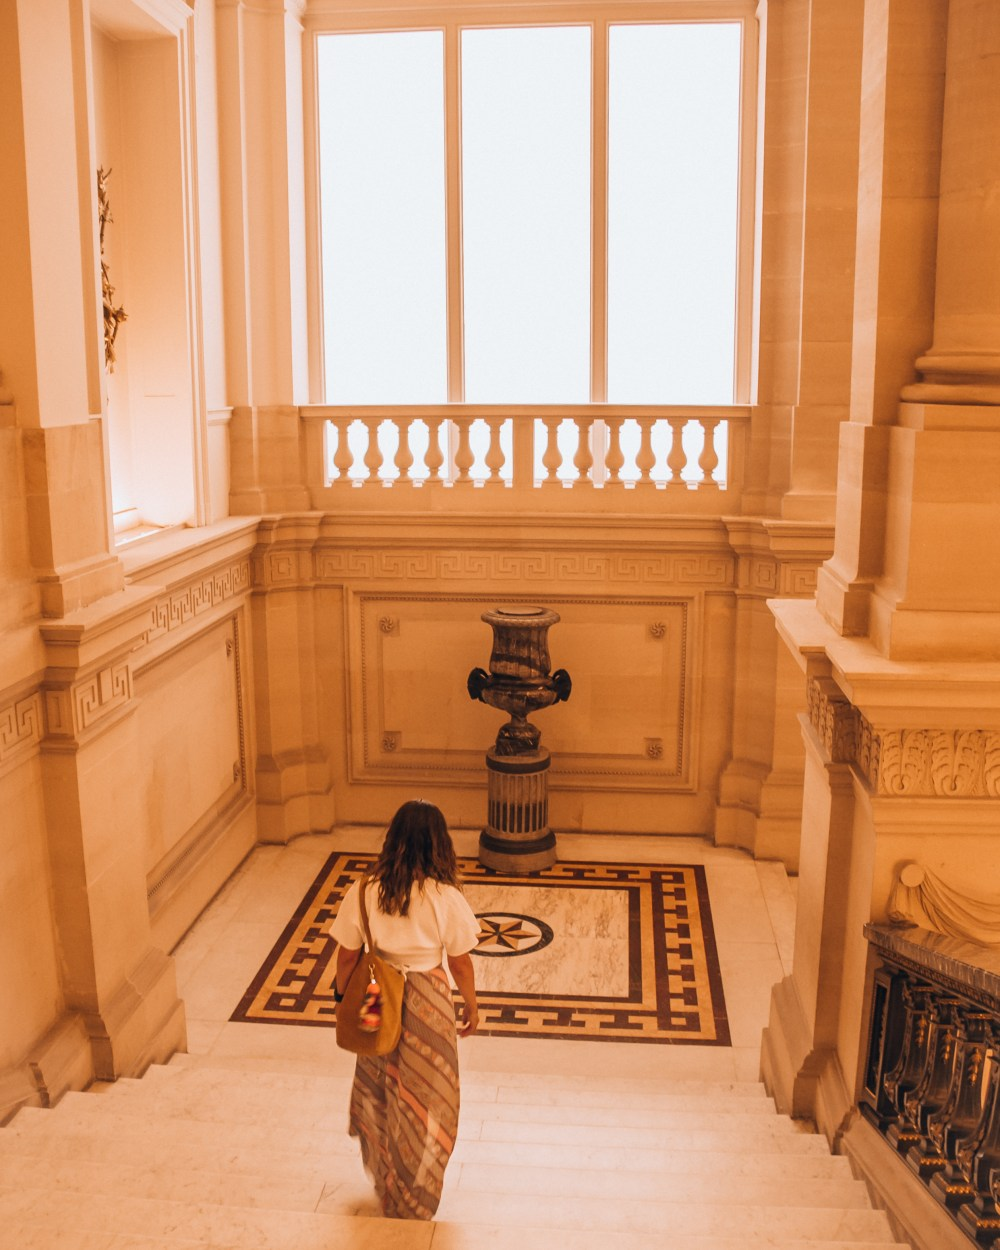 Inside the Royal Palace of Brussels 1